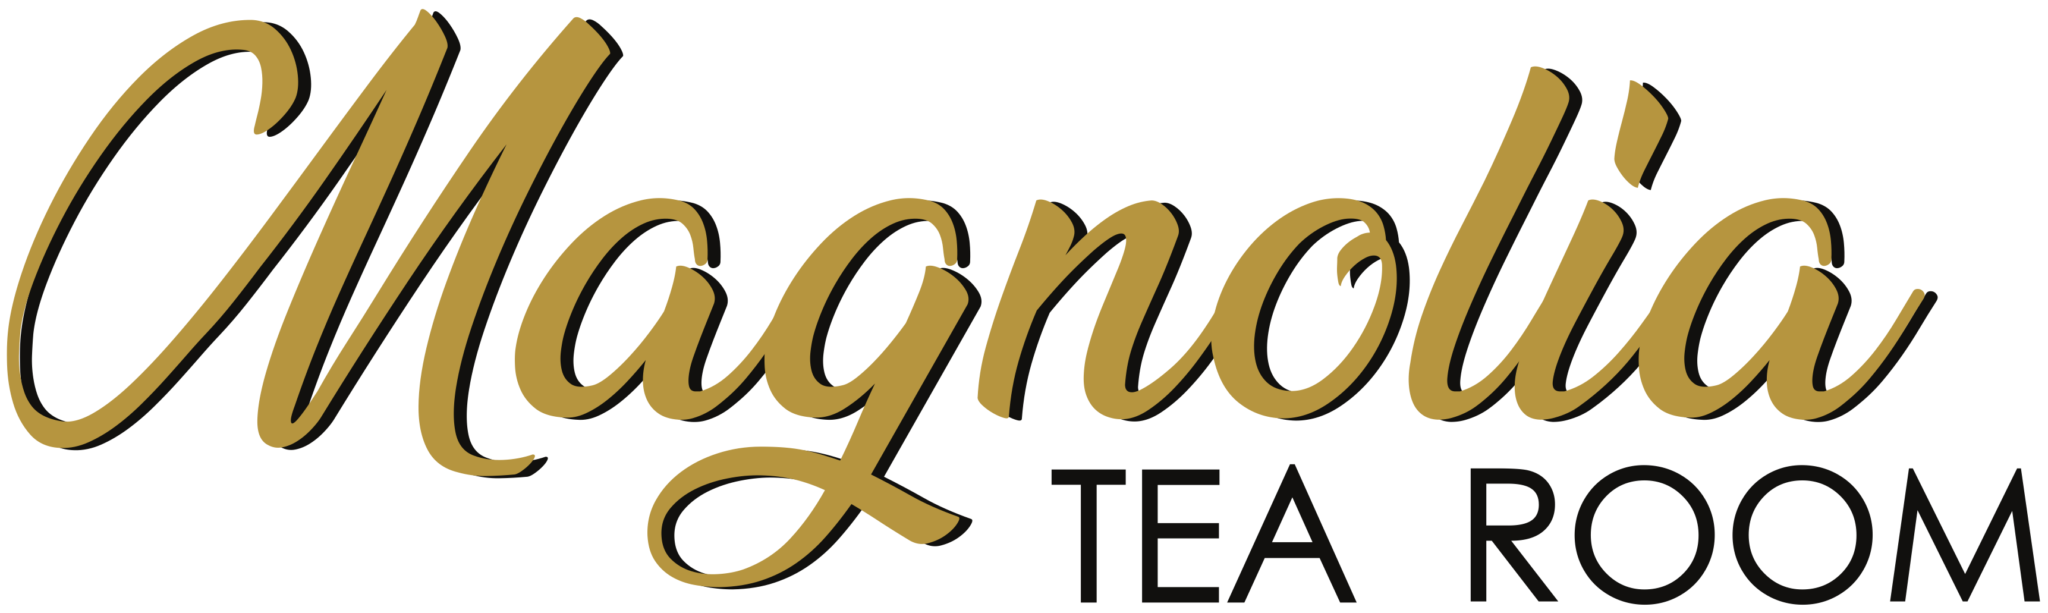 Magnolia Tea Room Transparent Logo